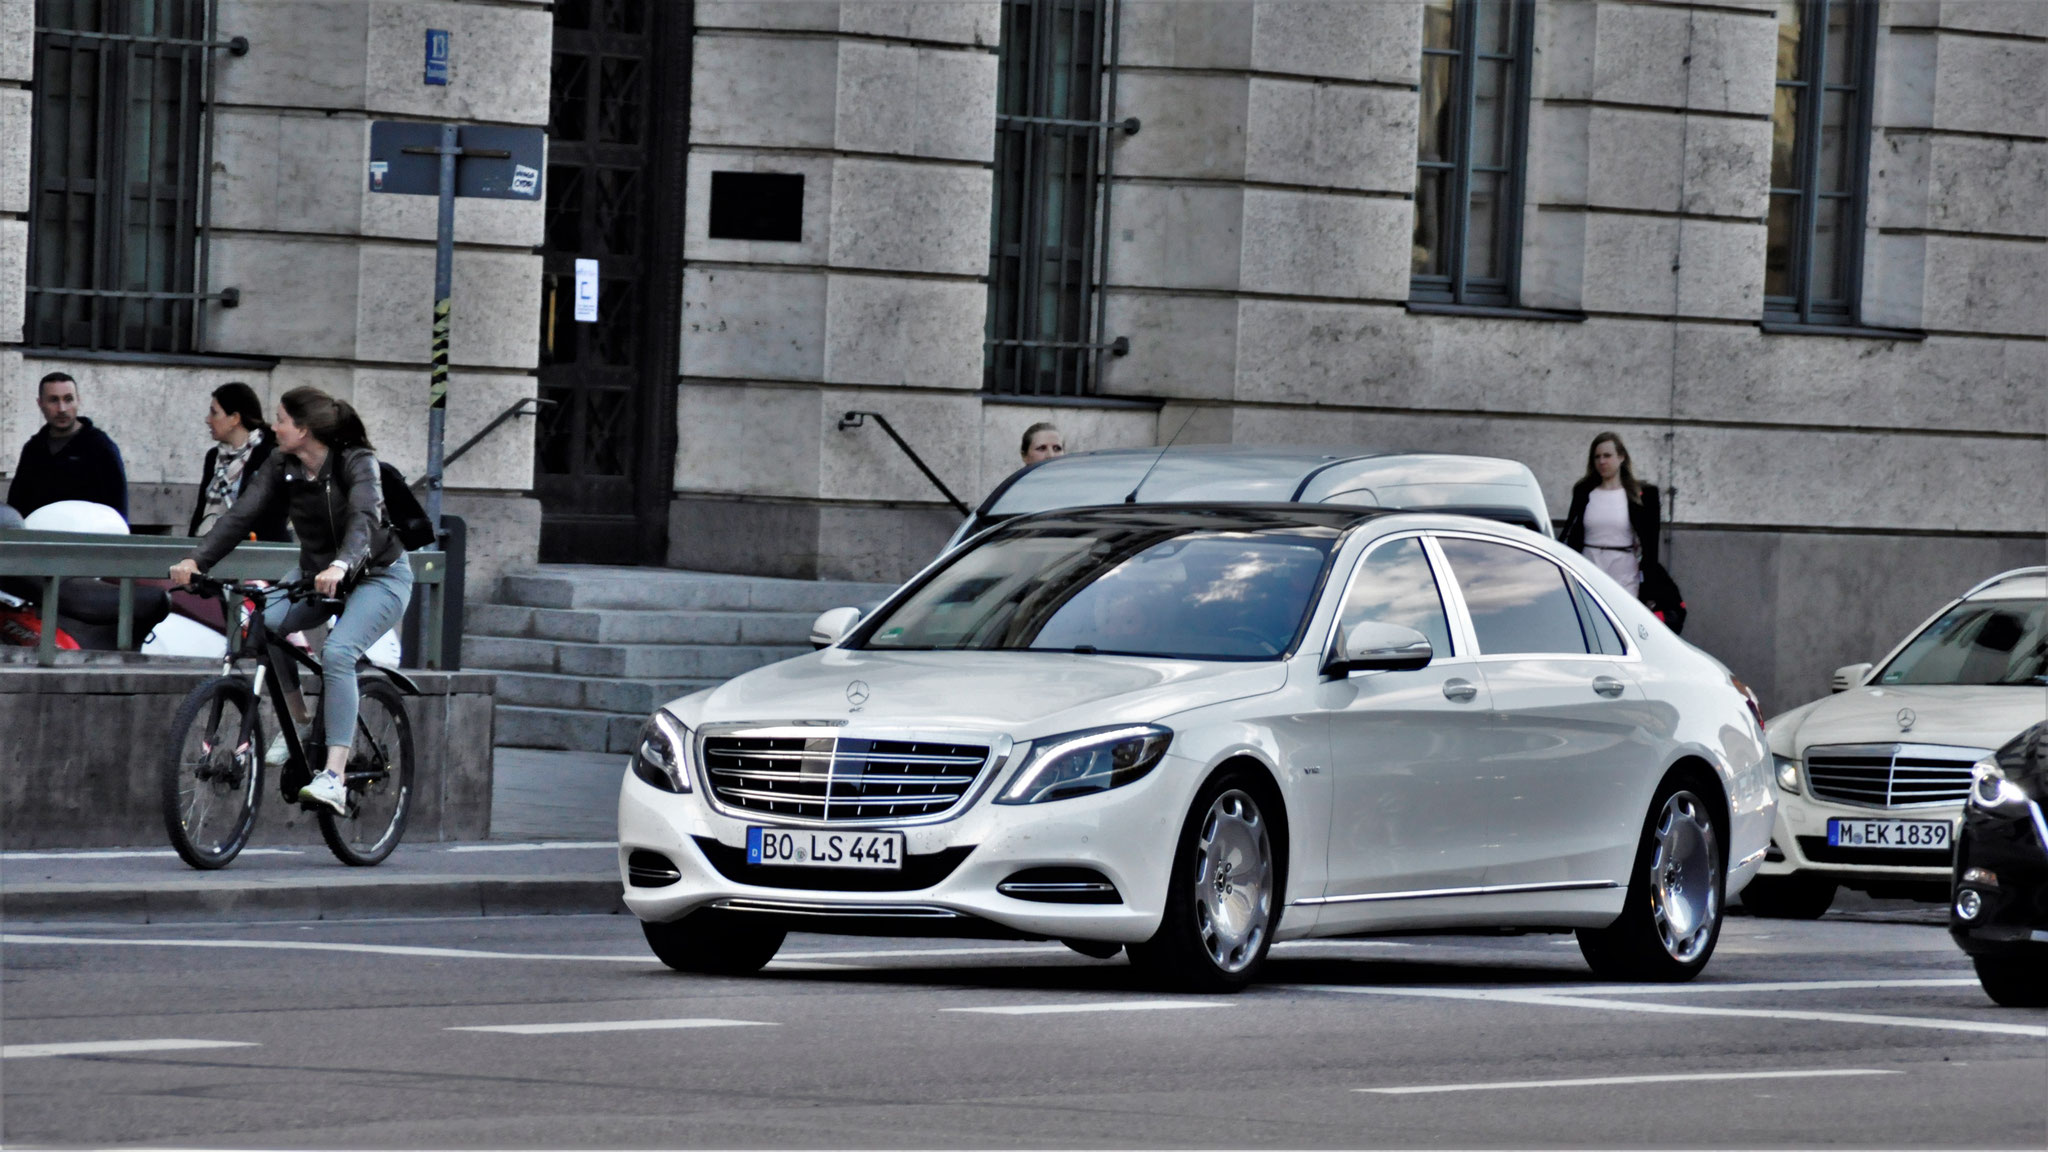 Mercedes Maybach S600 - BO-LS-441